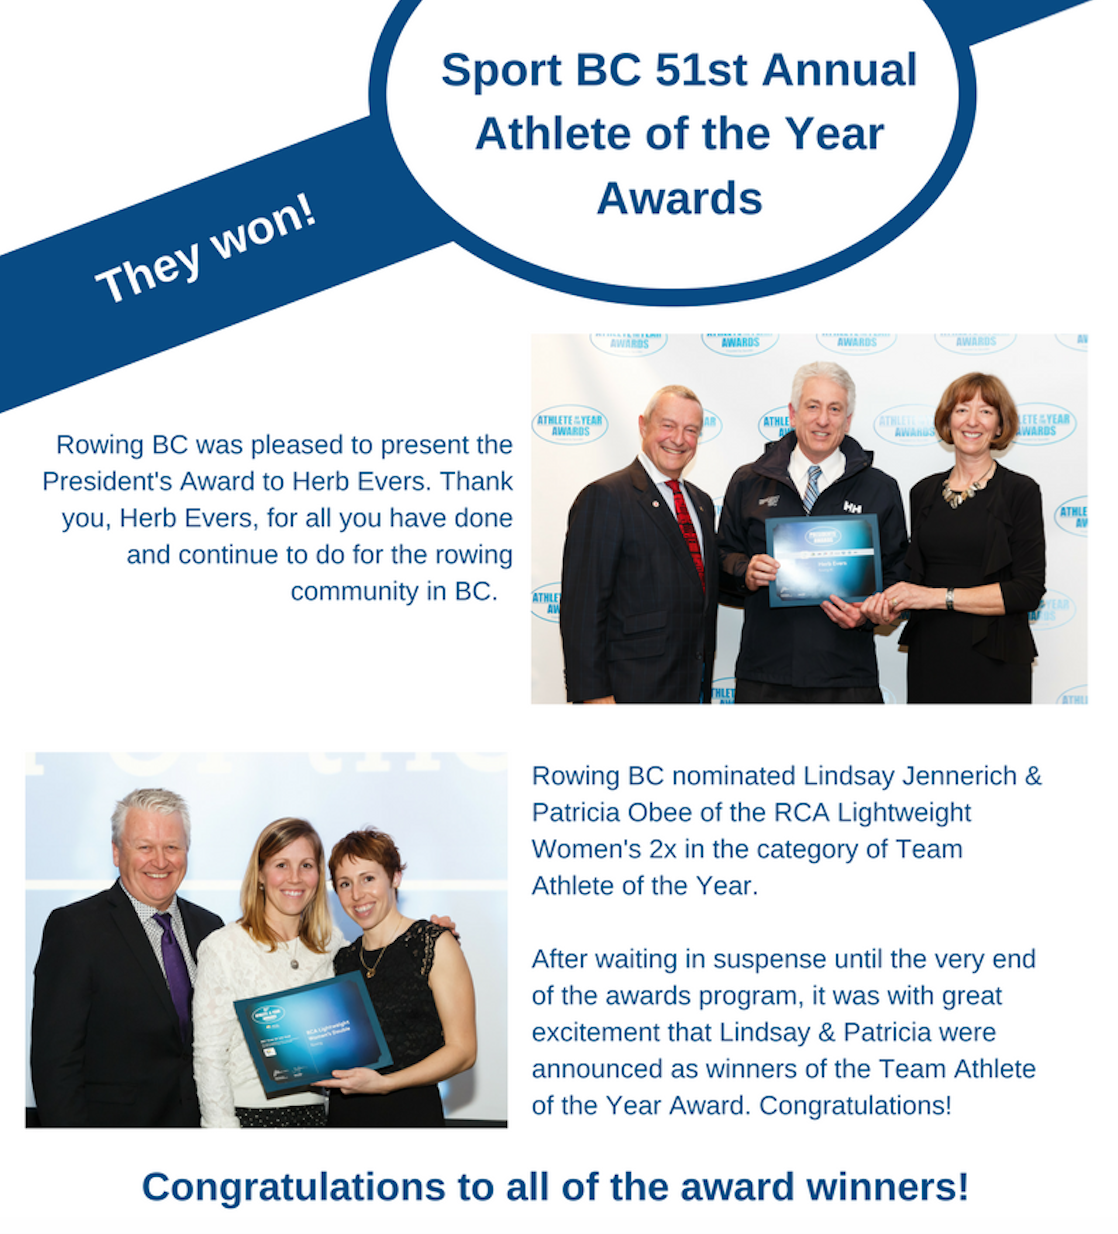 Sport BC 51st Annual Athlete Of The Year Awards